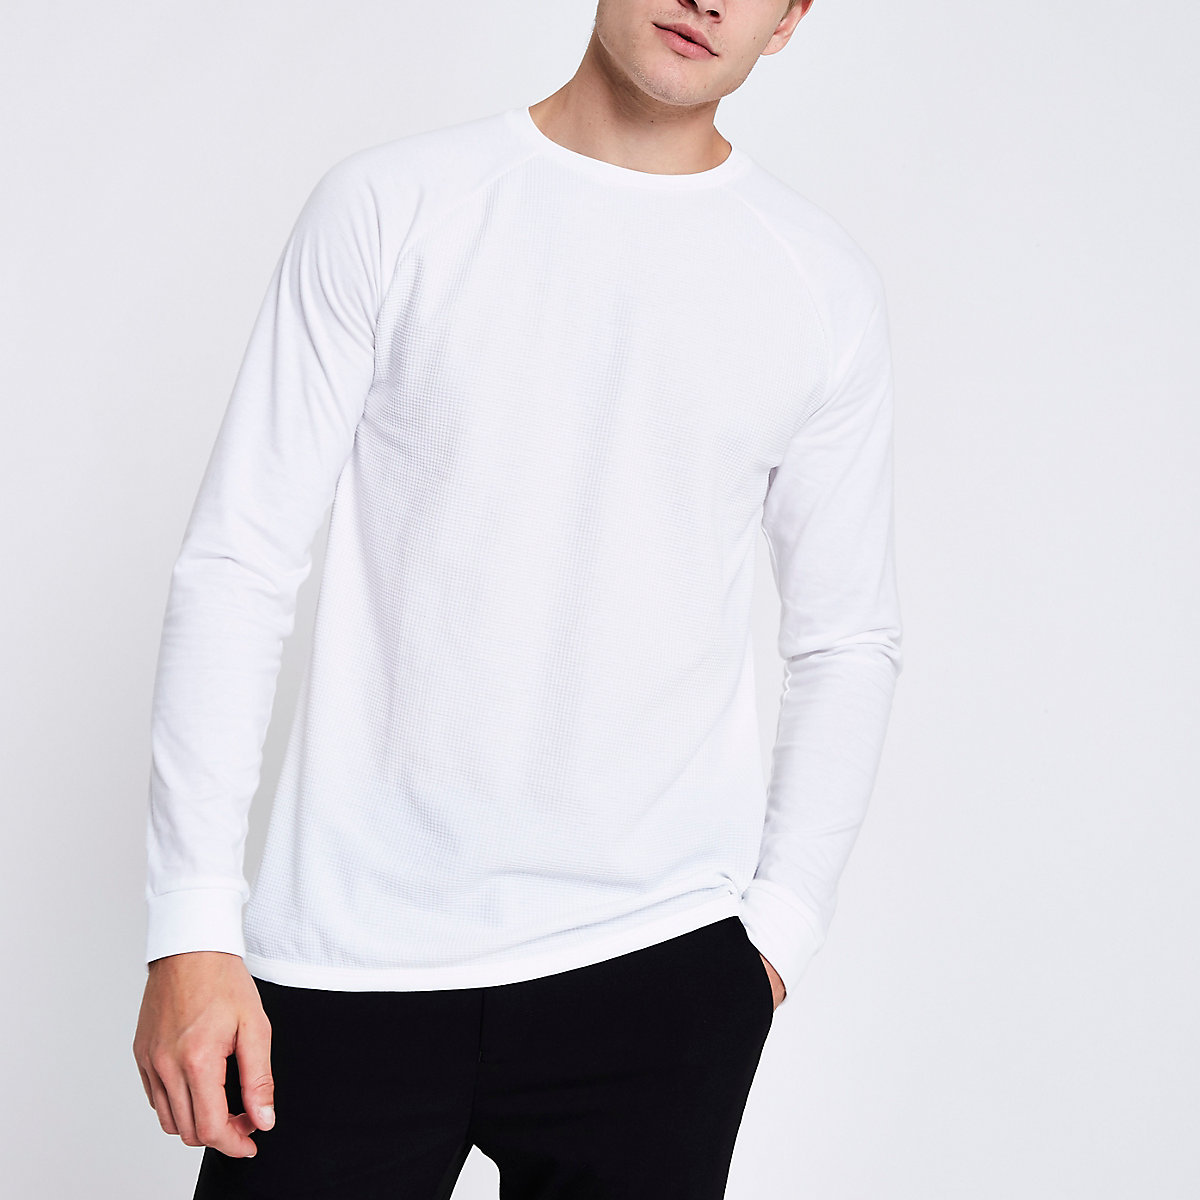 White waffle long sleeve raglan T-shirt - Long Sleeve T ...